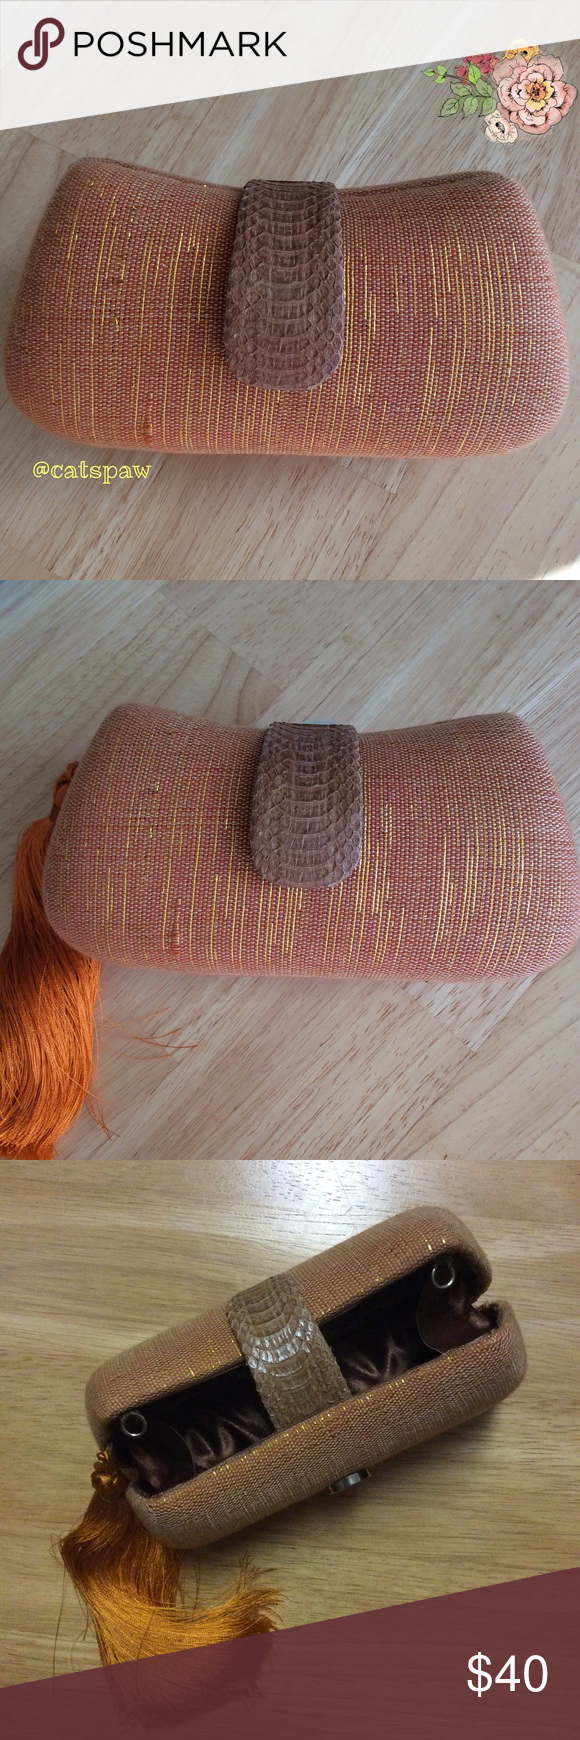 Woven clutch Rust-colored clutch, brand new. Handwoven, this beauty is secured with a leather strap. Accented with gold thread trimmings, the clutch features a magnetic closure and tassel. 6.5 inches in length, 3.5 inches in height and 2.75 inches thick. Bags Clutches & Wristlets